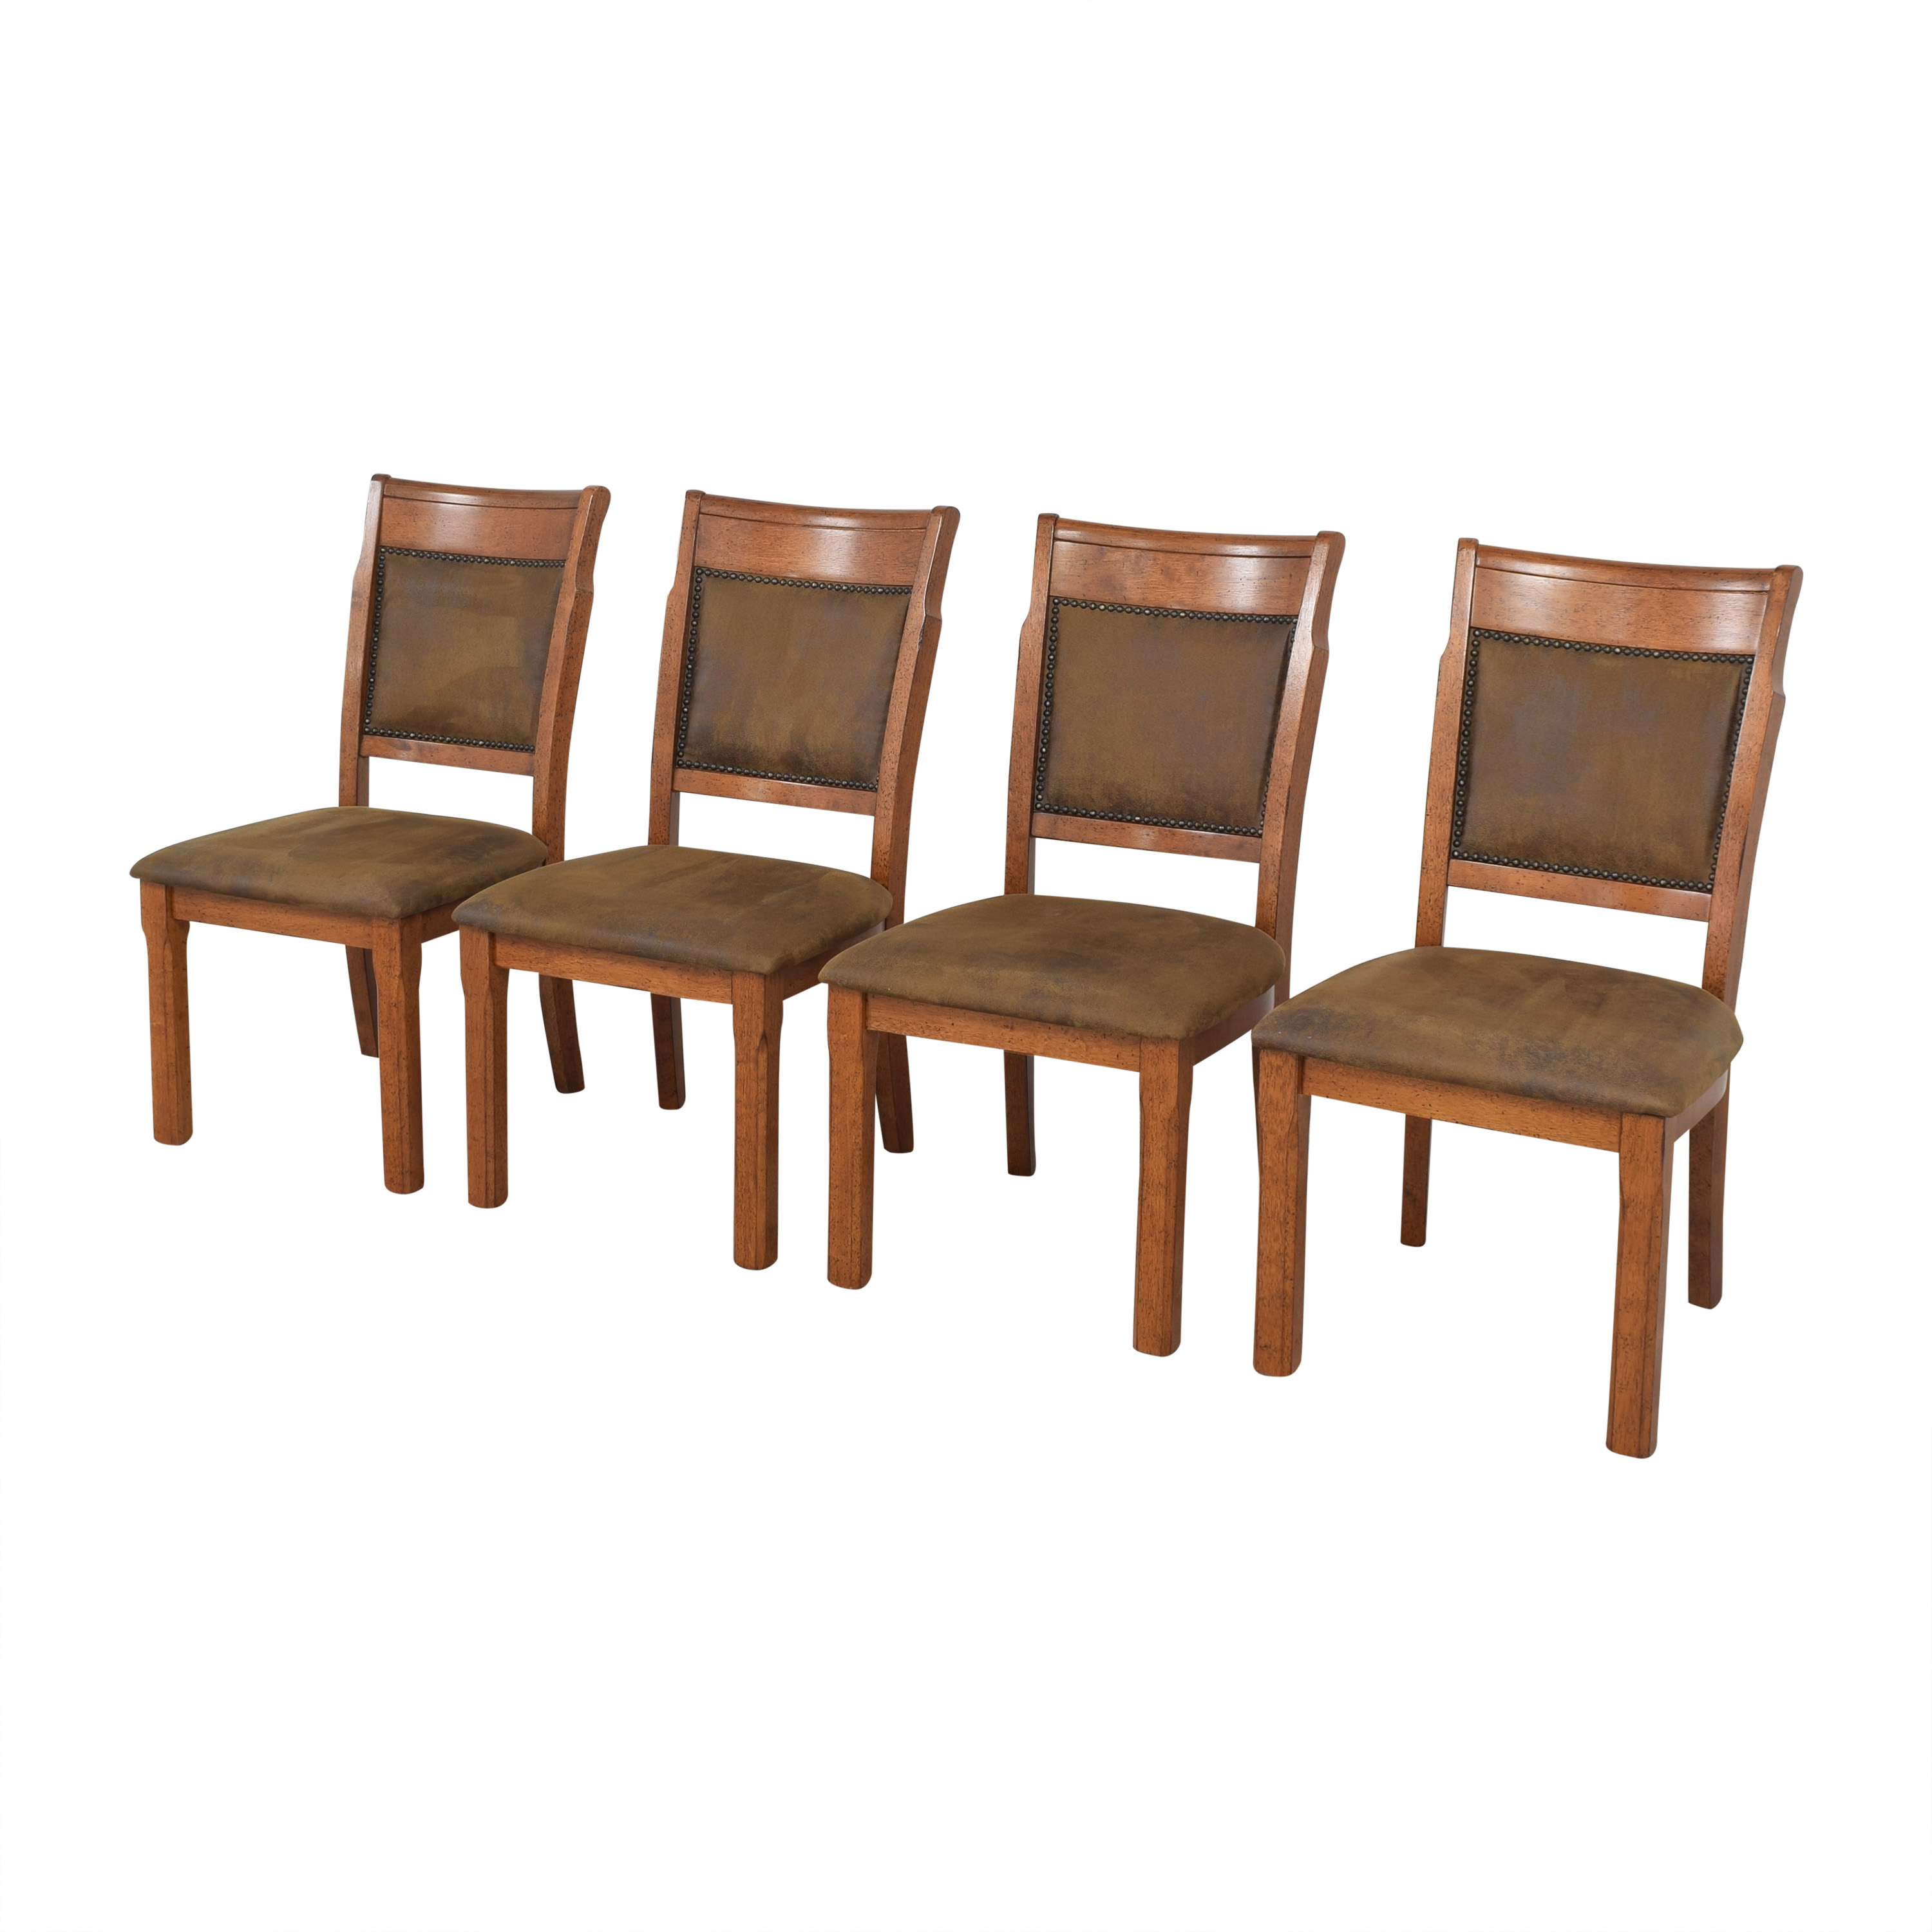 buy Raymour & Flanigan Raymour & Flanigan Soleste Dining Chairs online